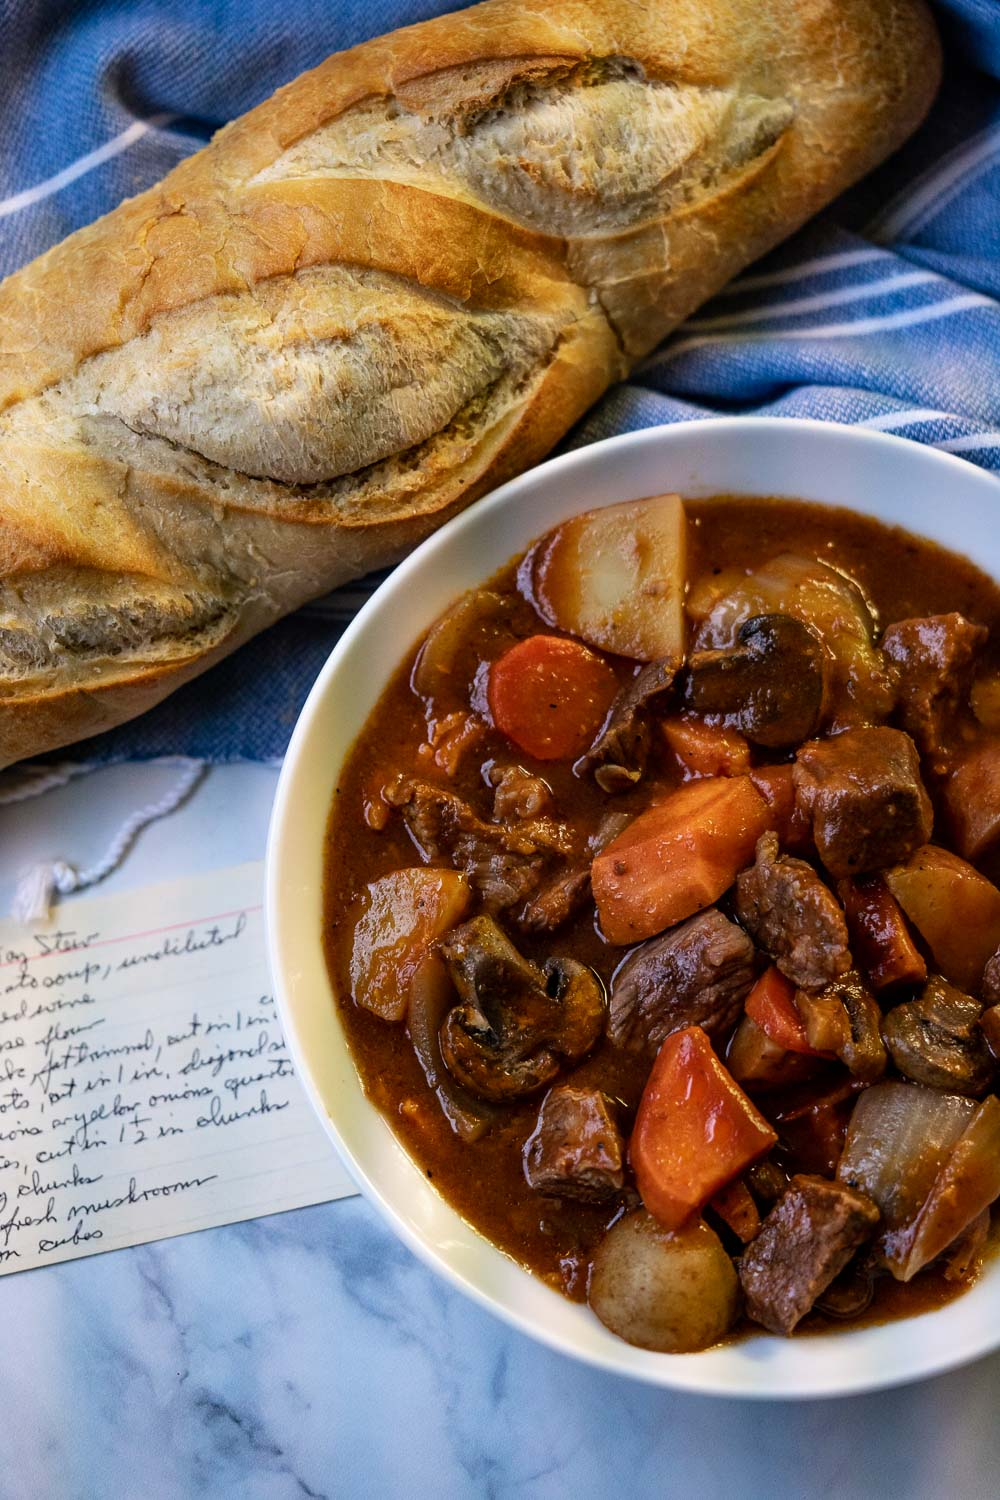 The finished Gone All Day Stew with grandpa's handwritten recipe on an index card.